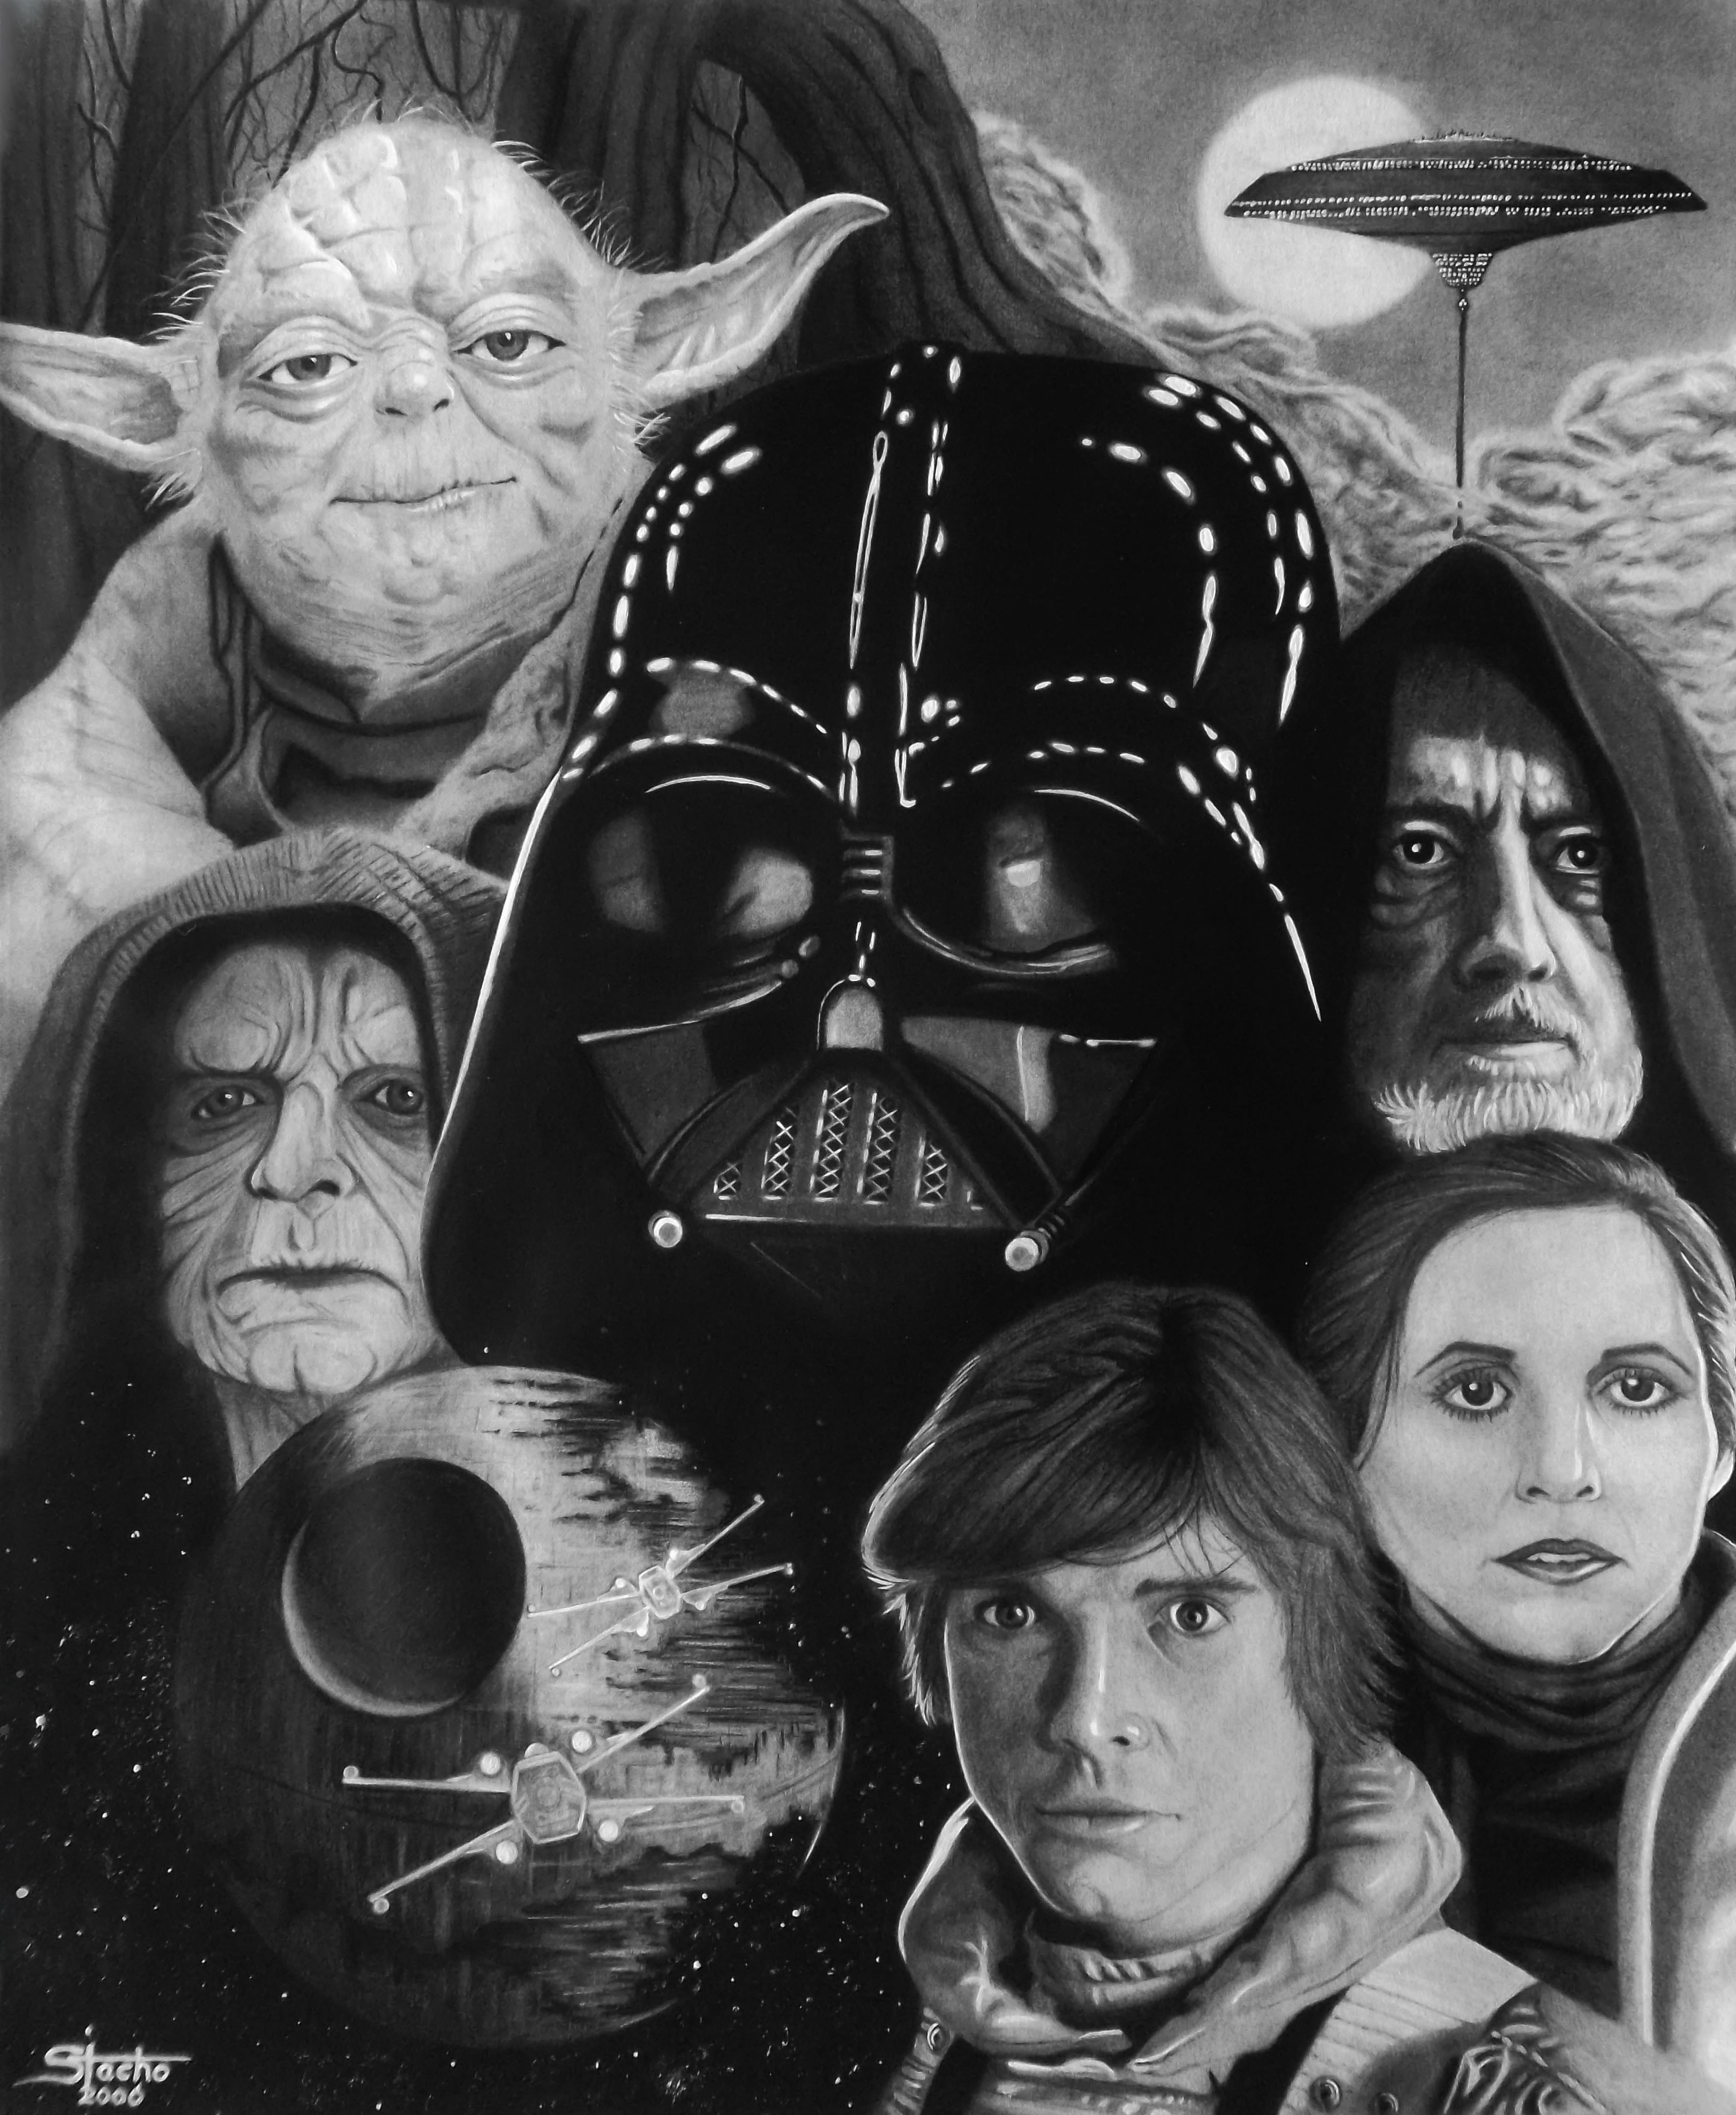 From a Galaxy Far, Far Away This was the first time I successfully drew a photo-realistic work of art.